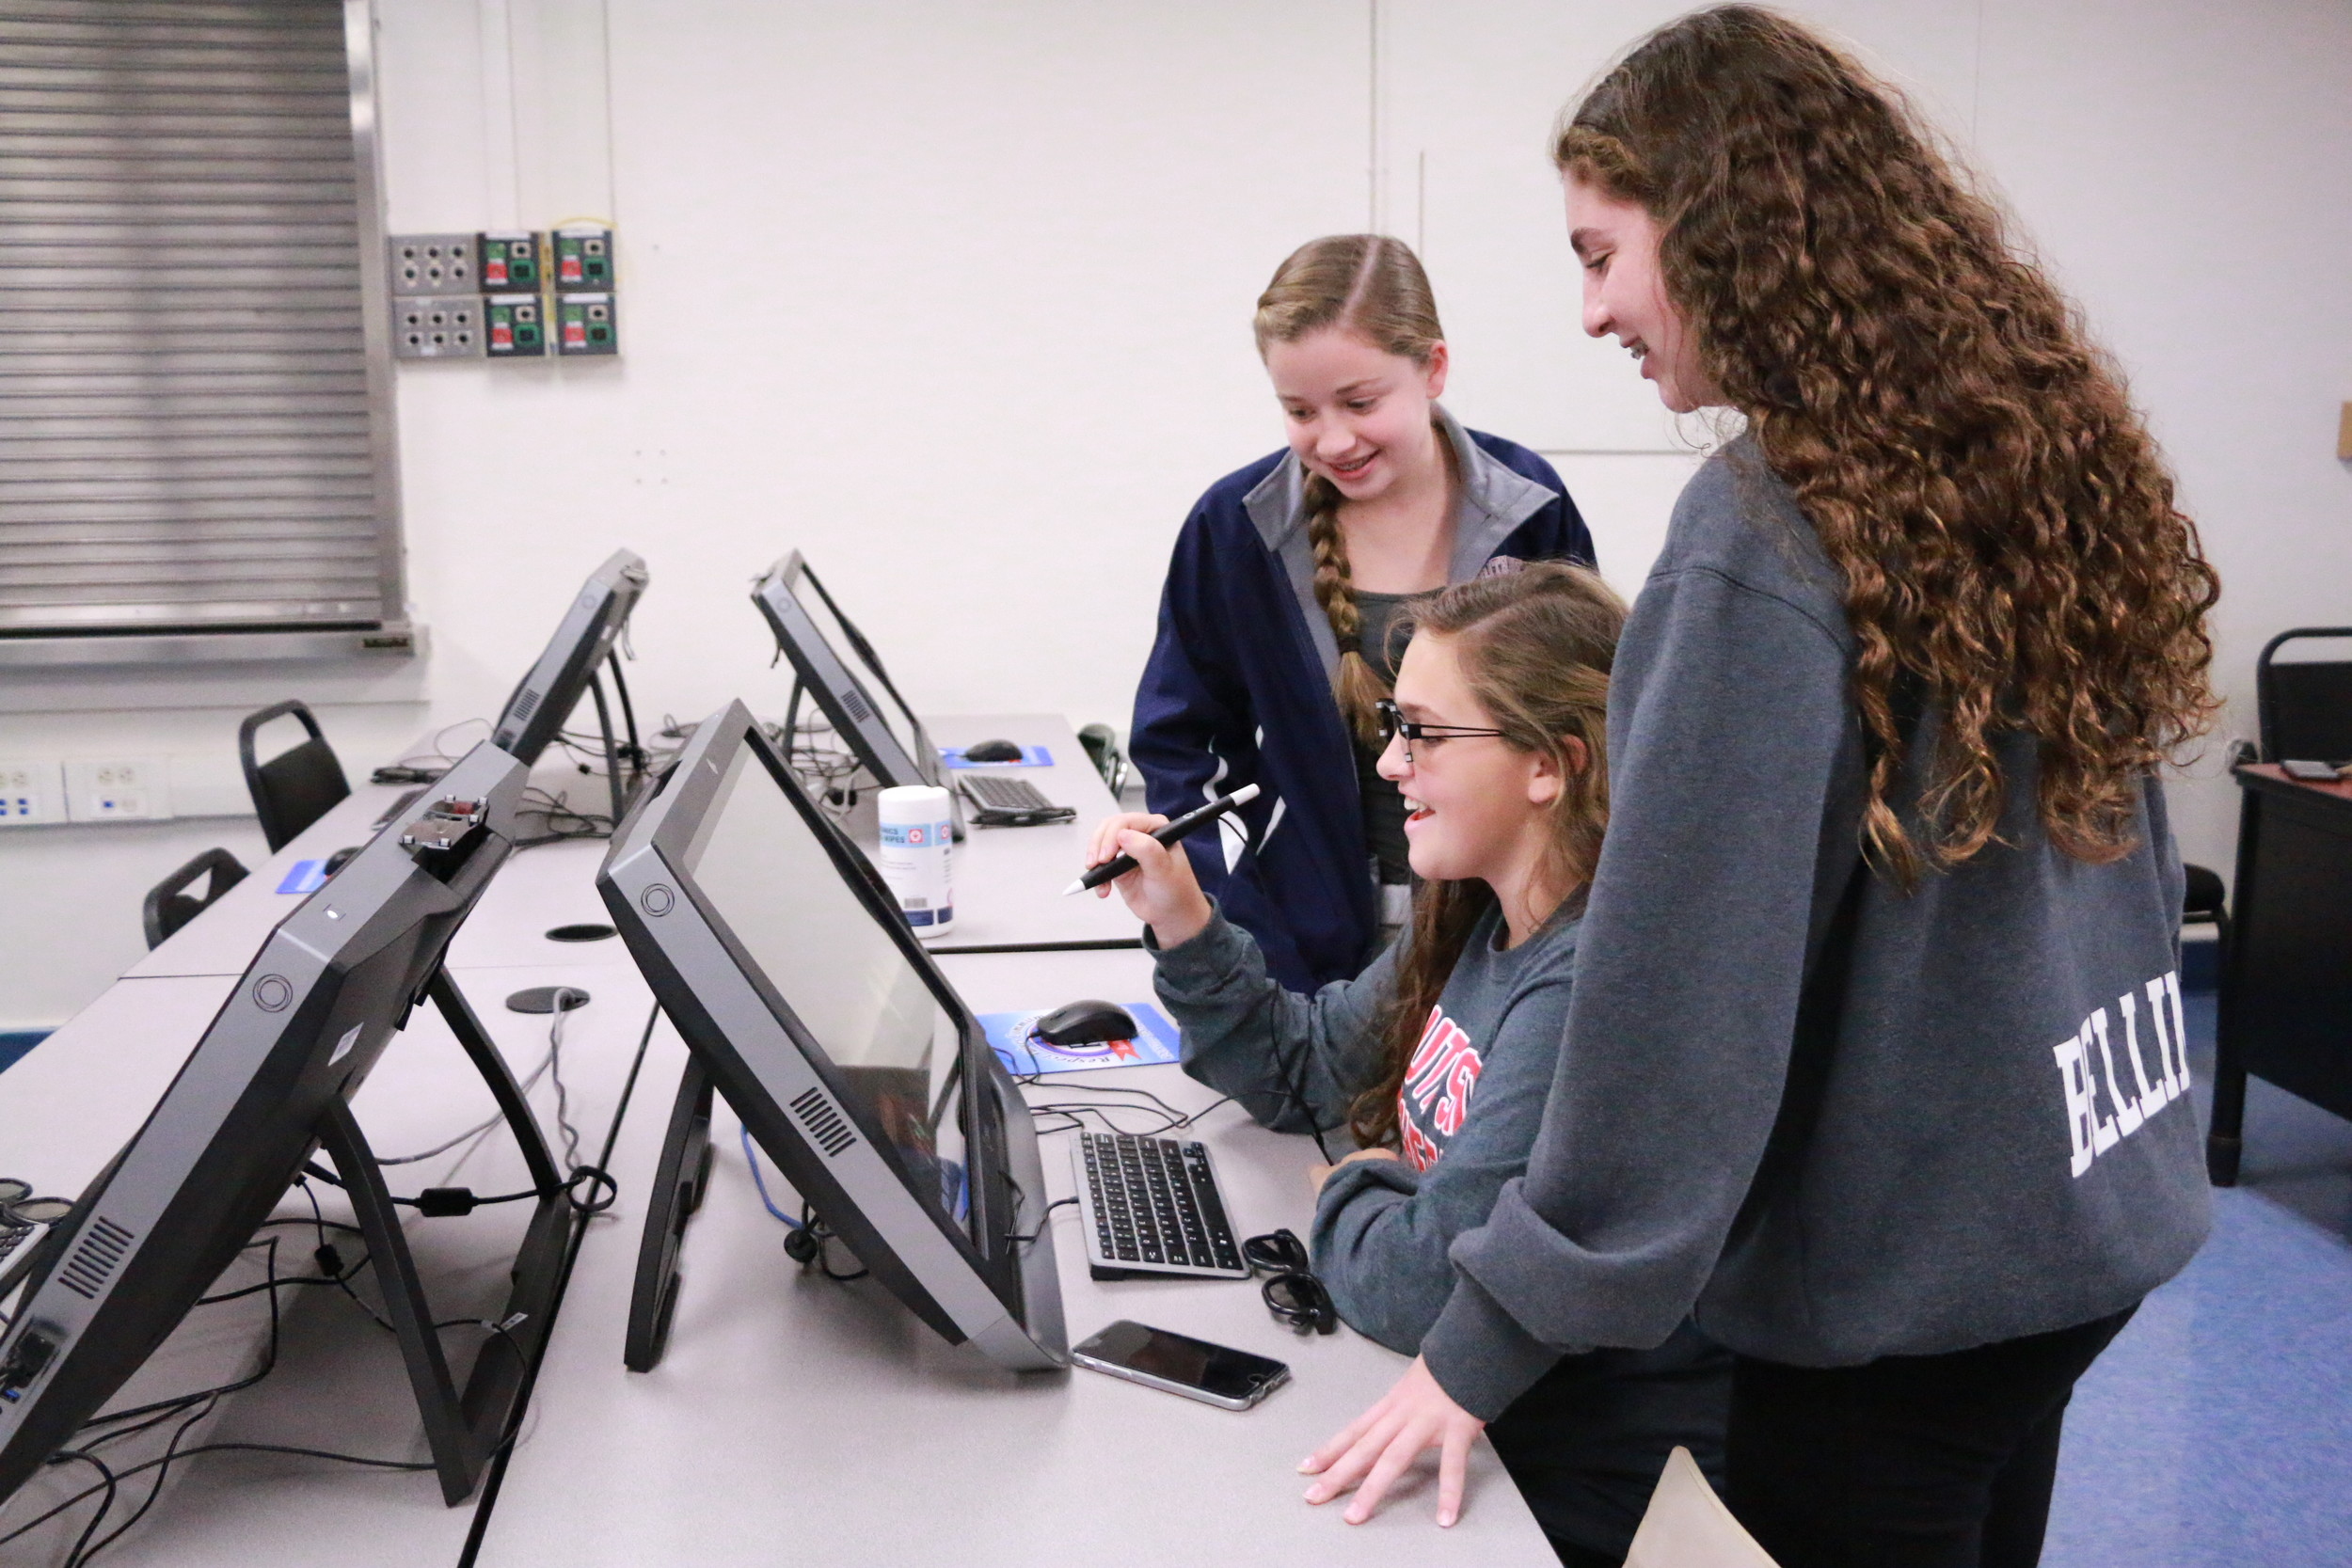 South Side High School students explored the district's zSpace virtual-reality technology, which will be available for a second straight year.